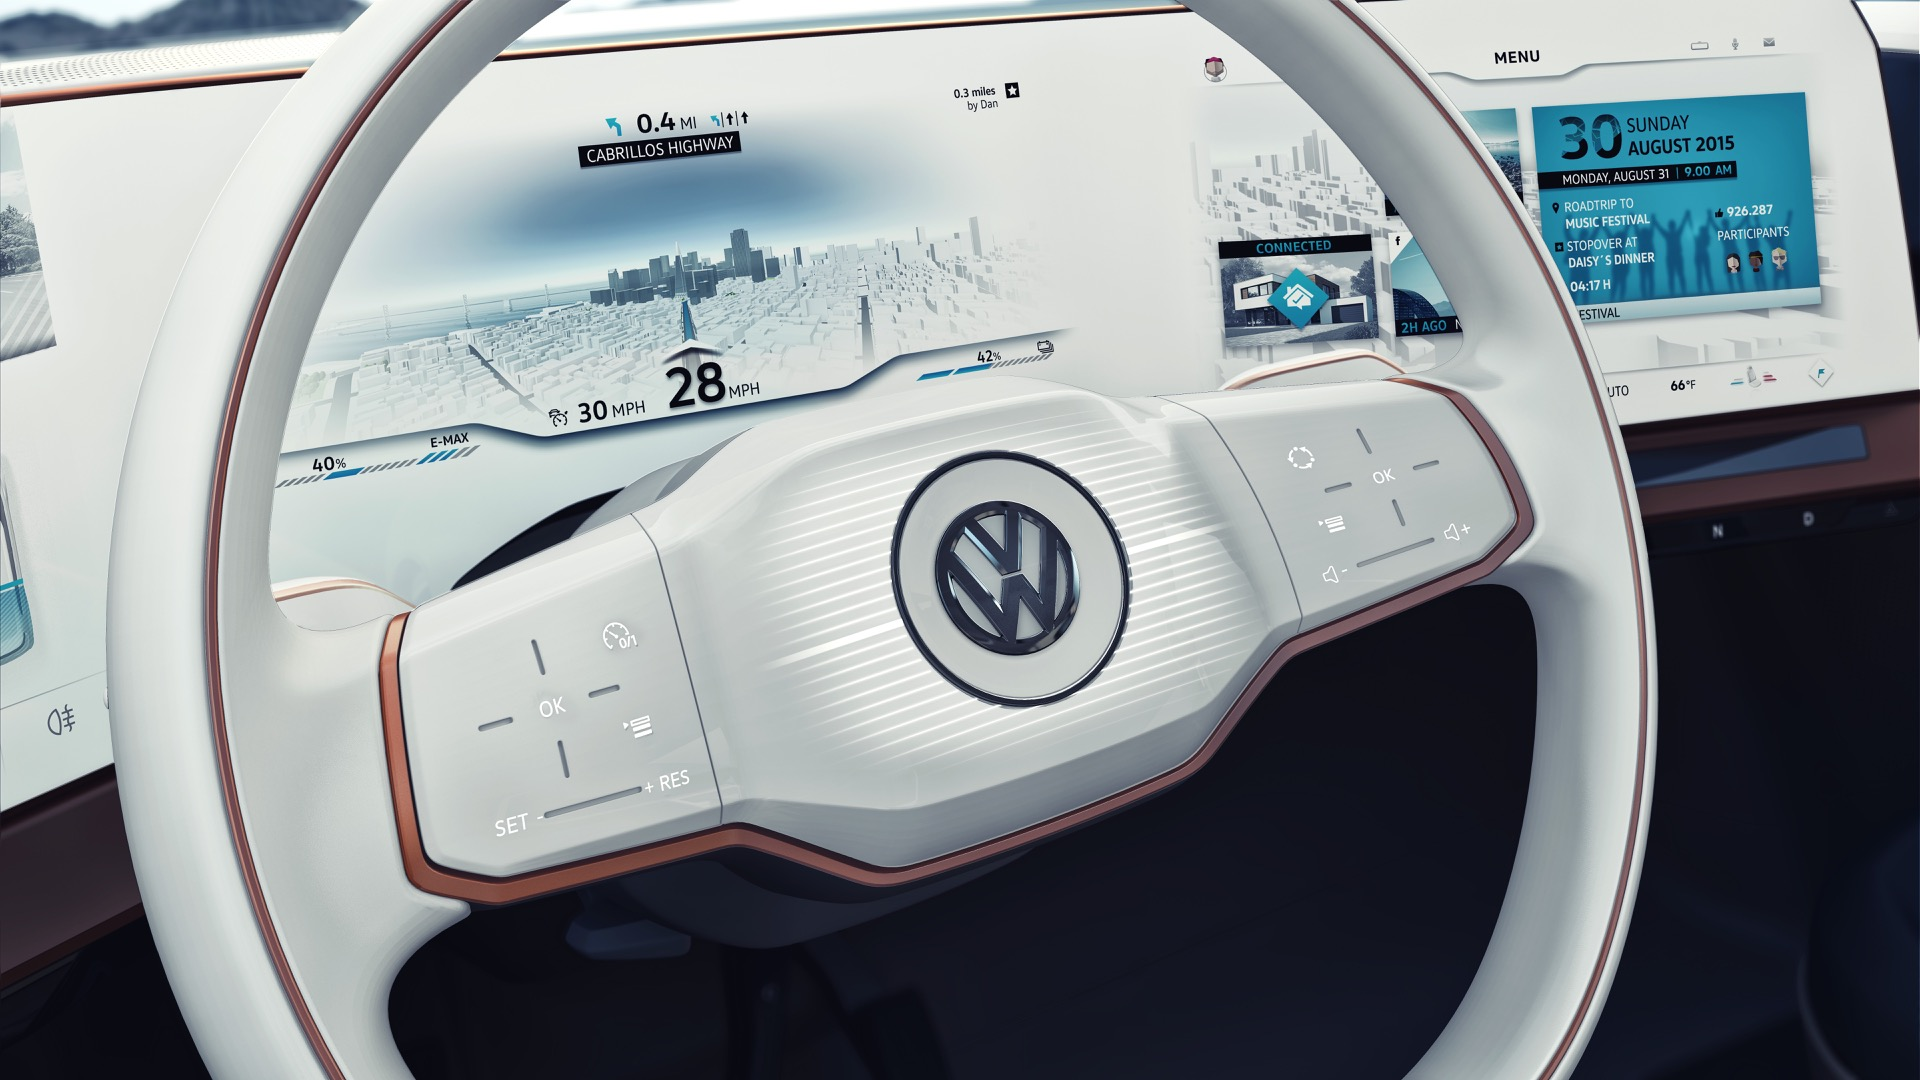 VW Electric Car Plans Ford Fiesta Cities Ban Diesels Todays - Vw car show las vegas